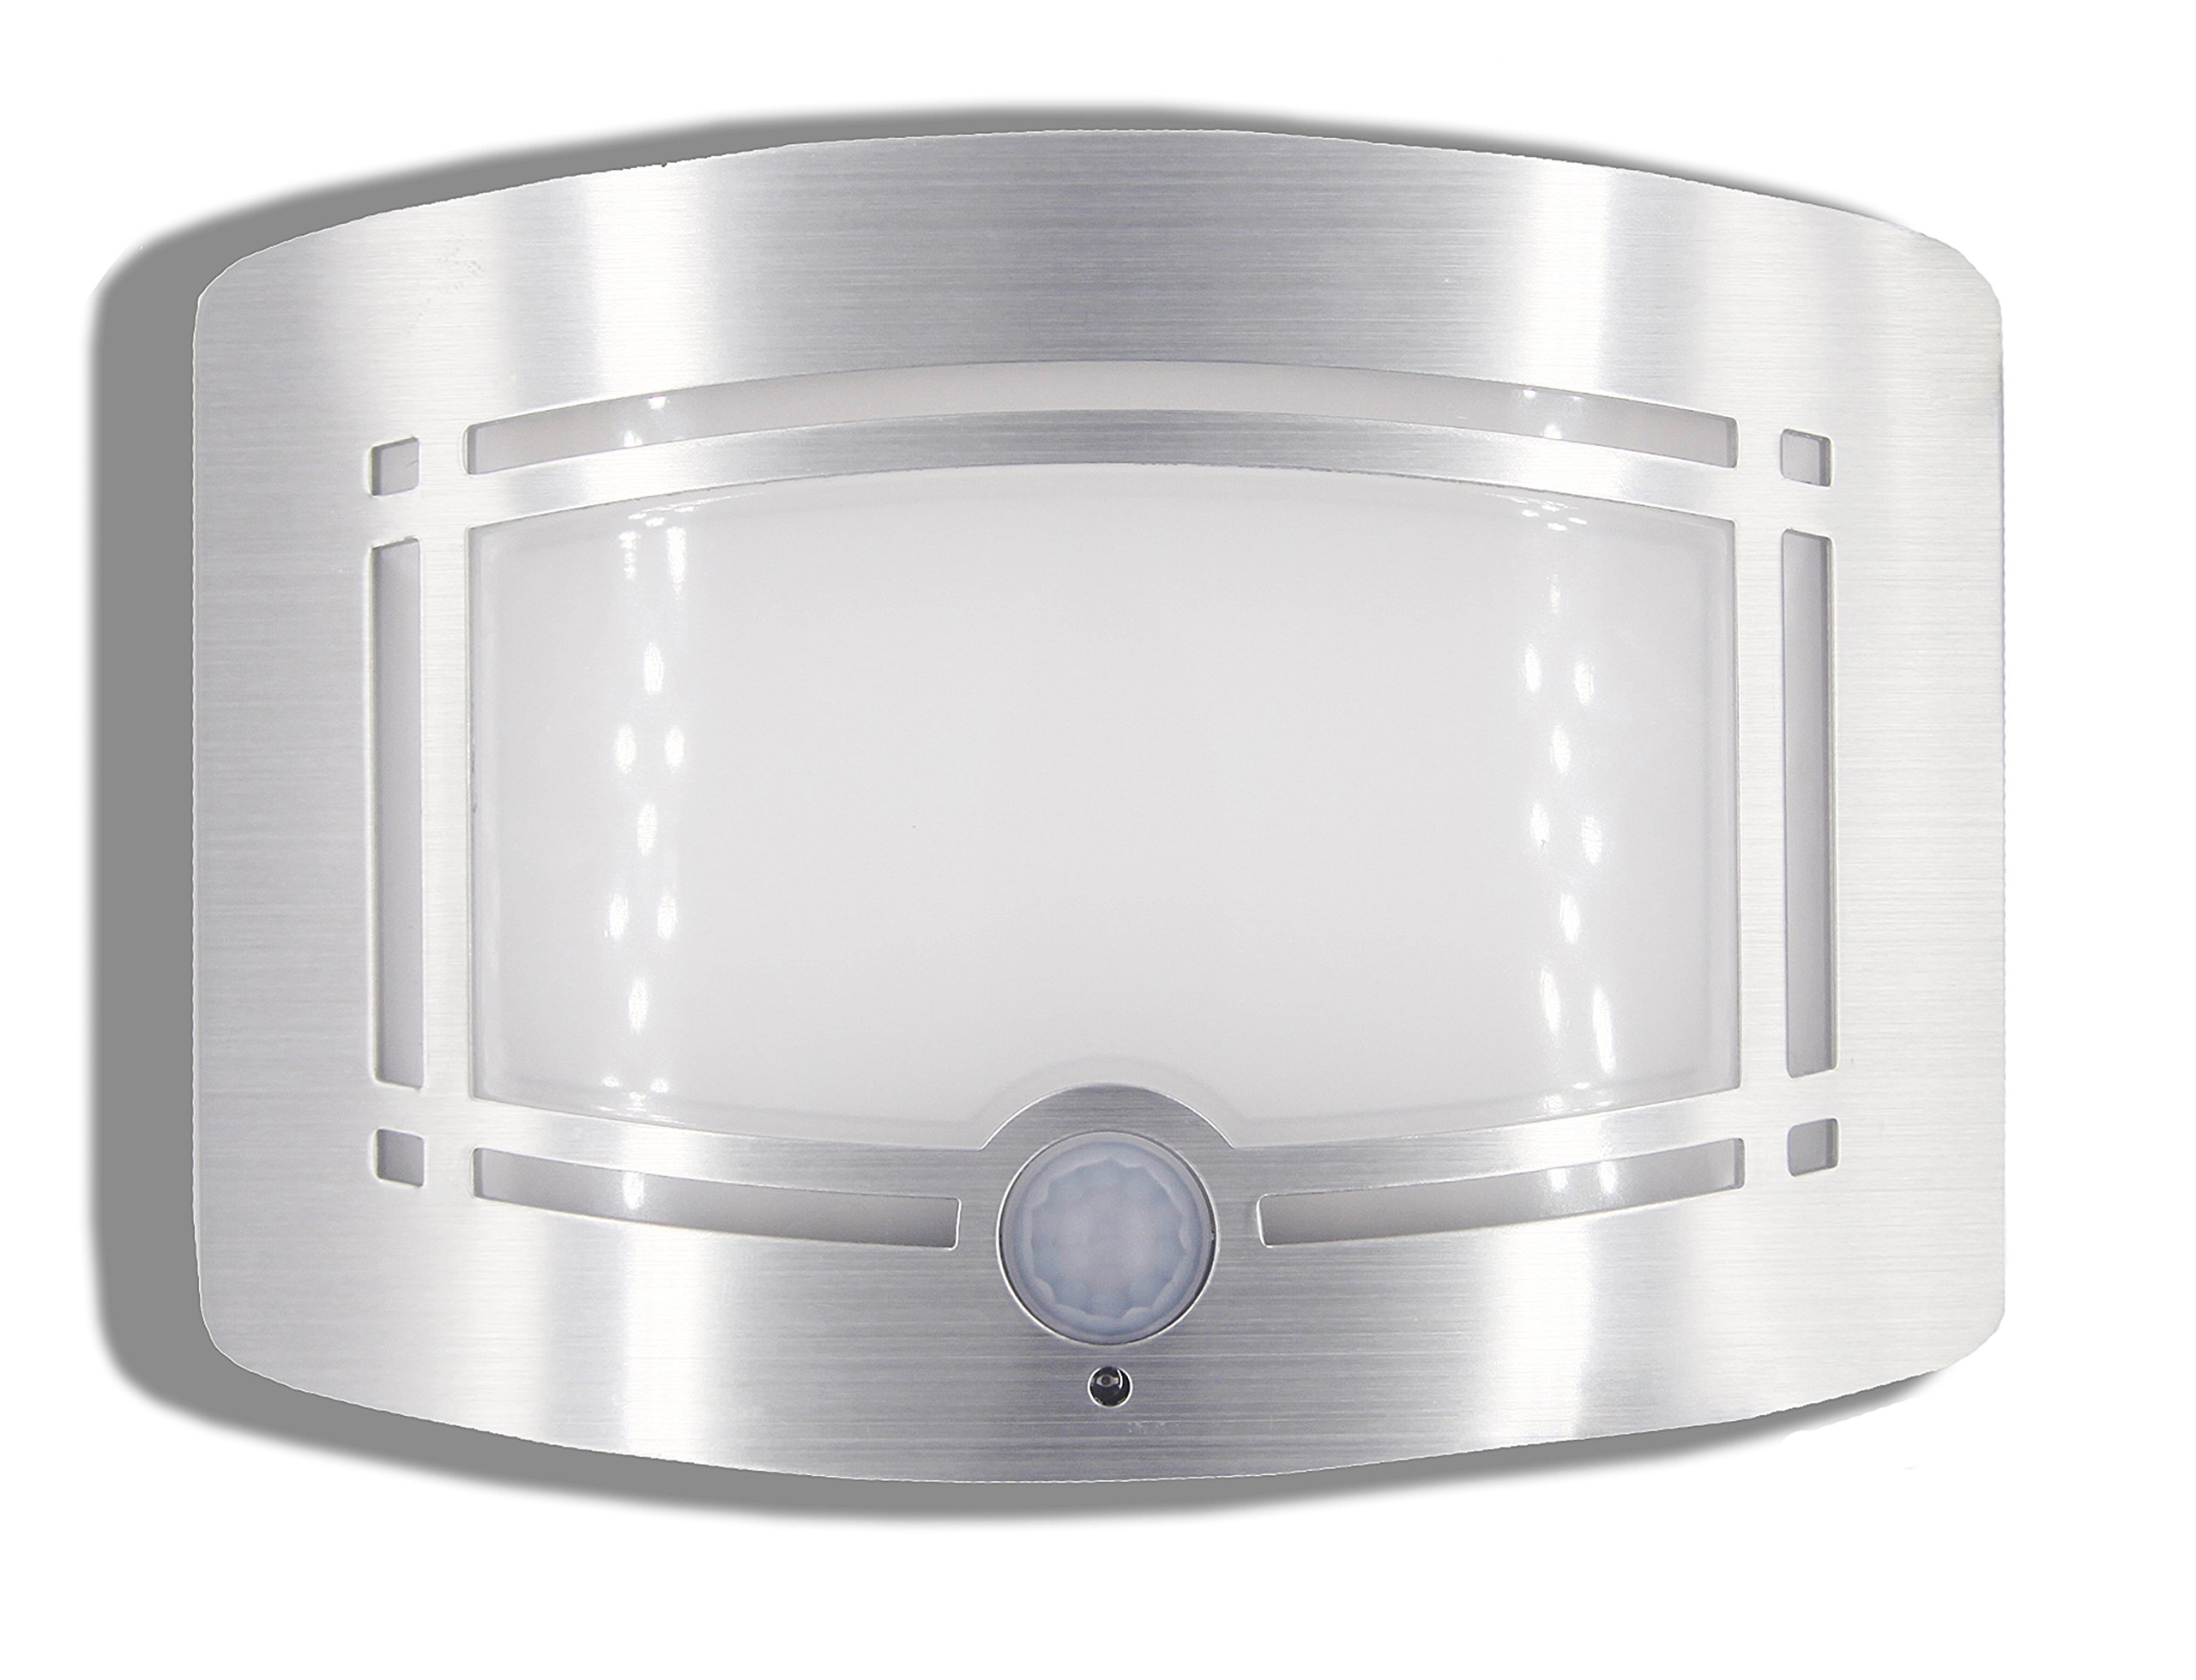 Motion Sensor Auto LED Night Light - Soft Warm White Wireless Wall Sconce Light Controlled by Motion Activated Sensing & Light Sensor - Stick on Anywhere Wireless Battery Powered (Not included) by WISLIGHT (Image #1)